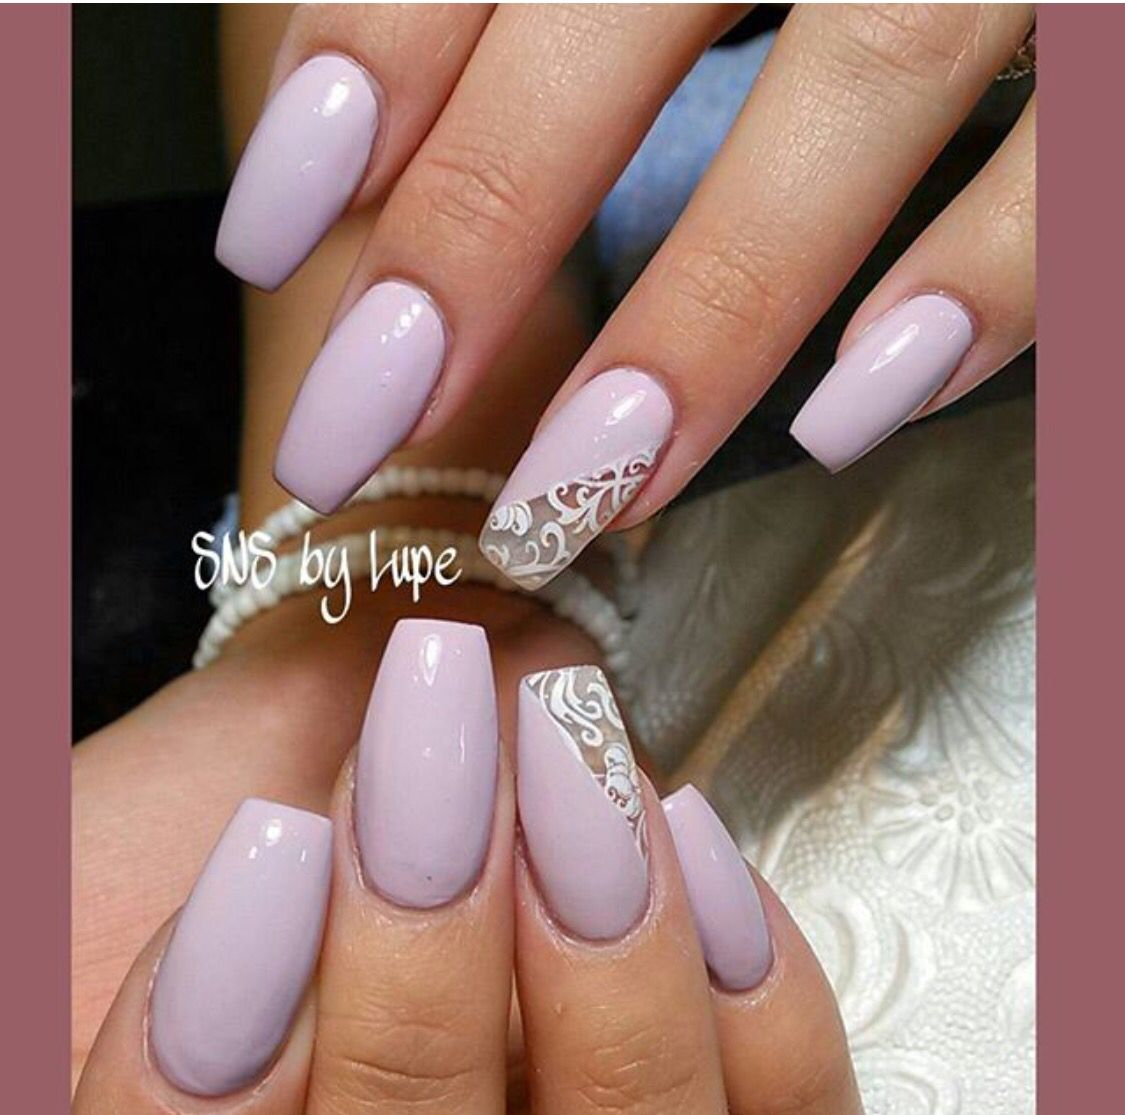 SNS nails with design by Lupe ! | SNS Nails | Pinterest | Sns nails ...